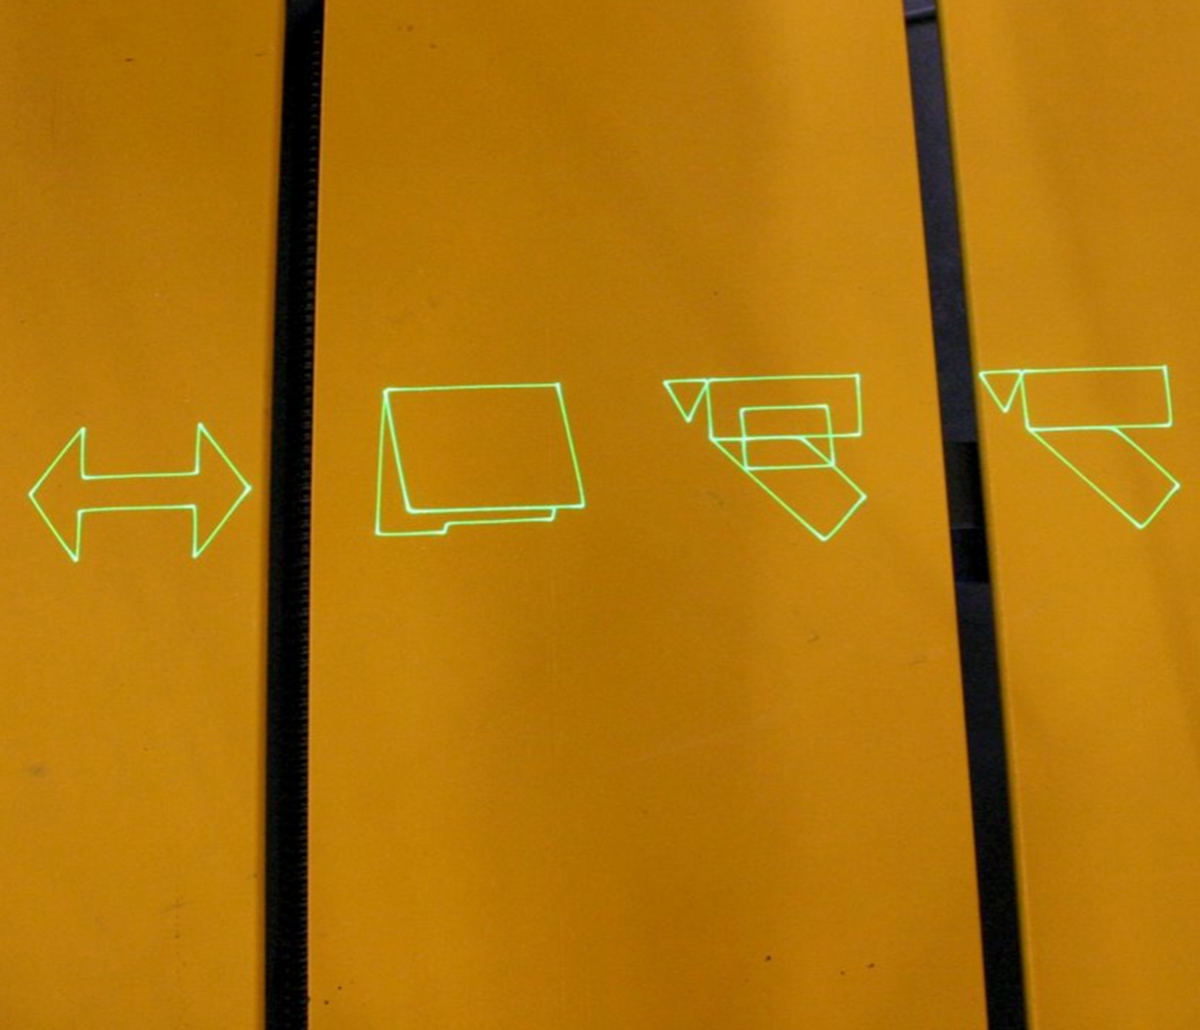 MiTek Virtek Trussline Automated Solutions - Arrow, folder, and shapes projected onto a yellow background